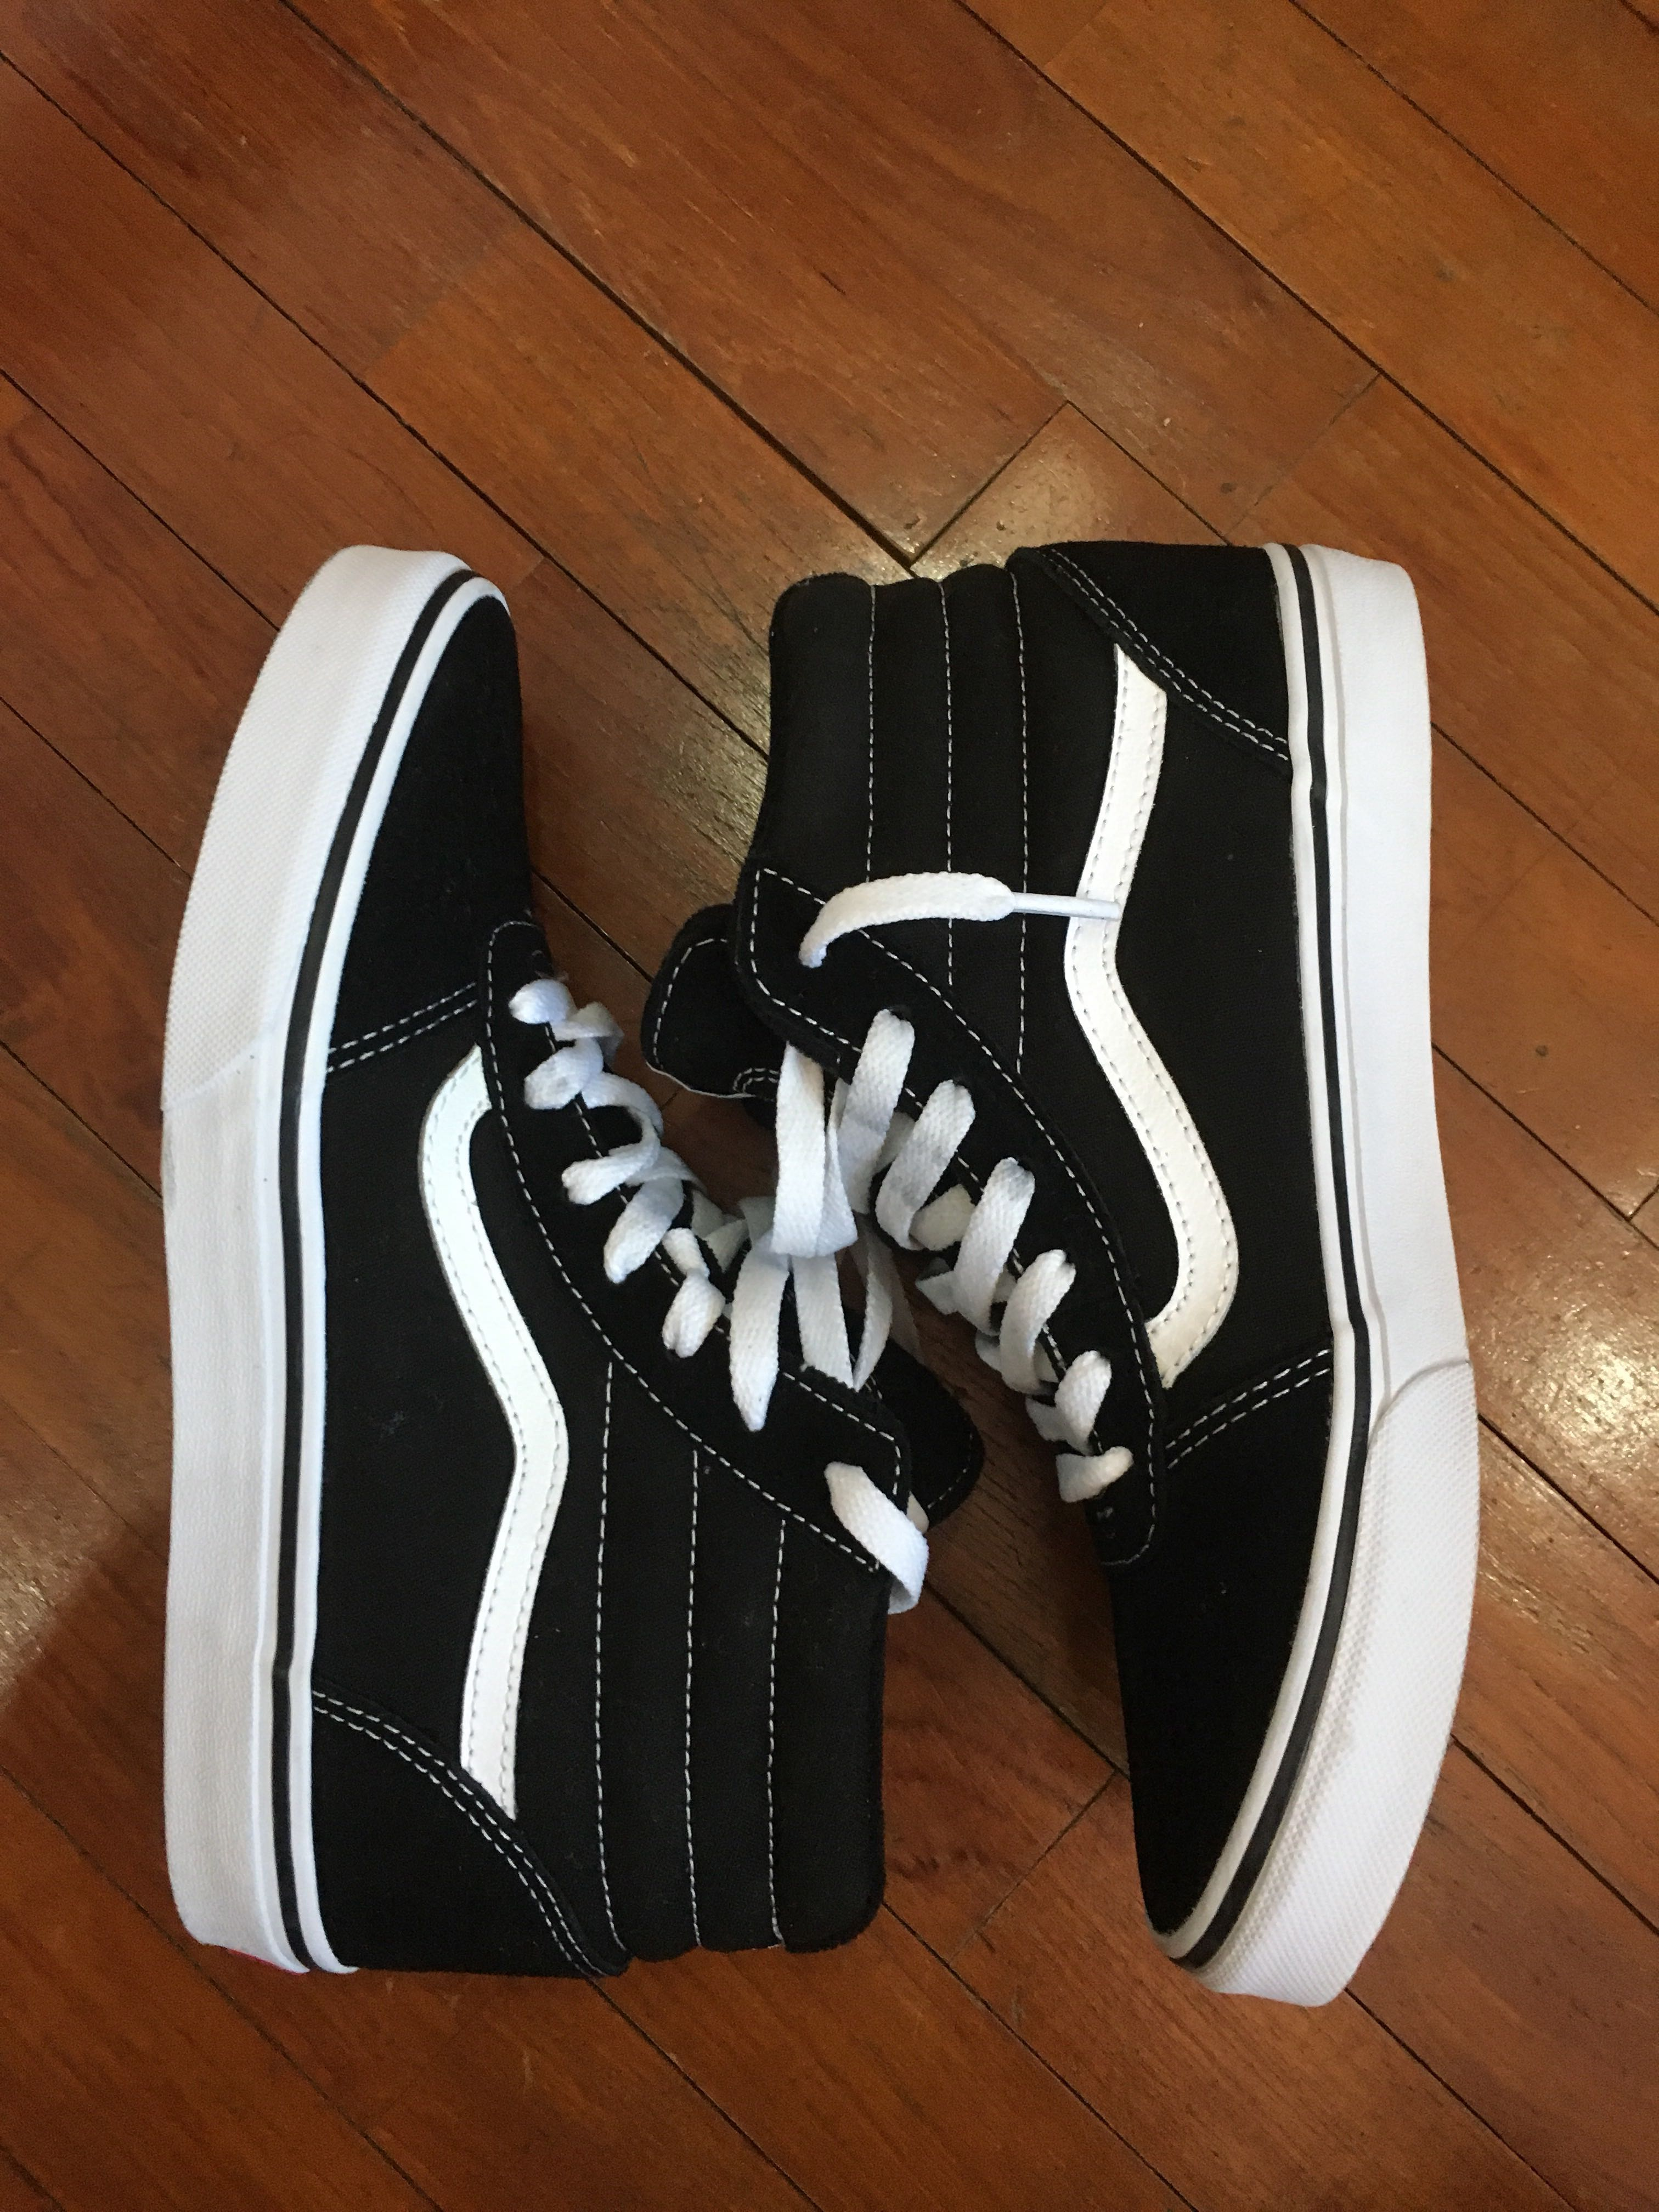 20270c6432 Vans Old Skool High Top Trainers, Women's Fashion, Shoes, Sneakers ...